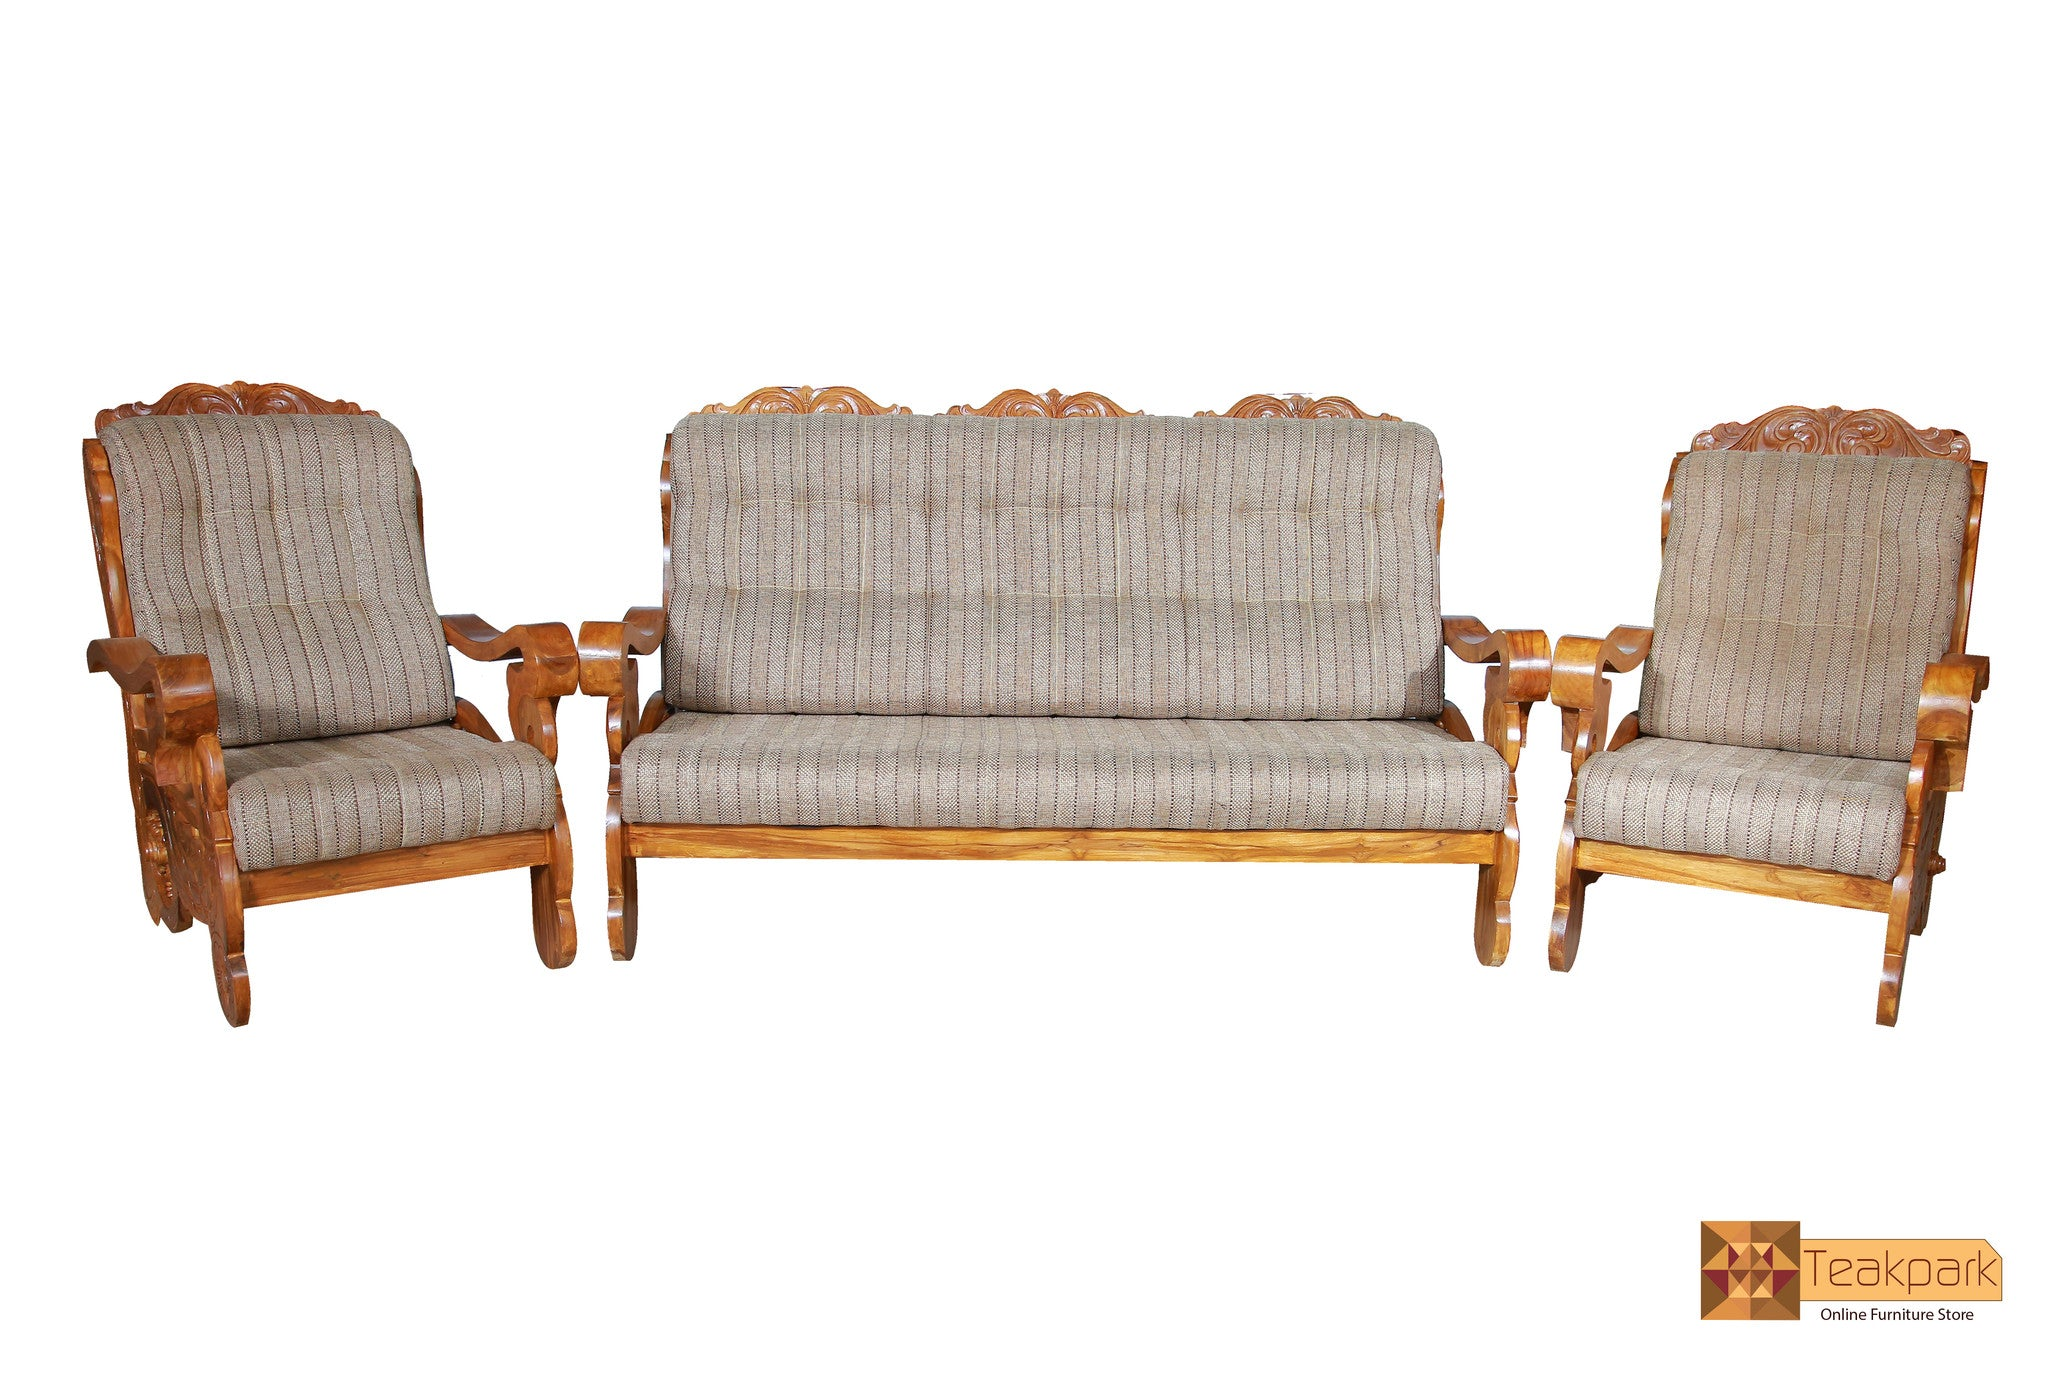 Manhattan Teak Wood Sofa Set 3 1 1 Seater Teakpark